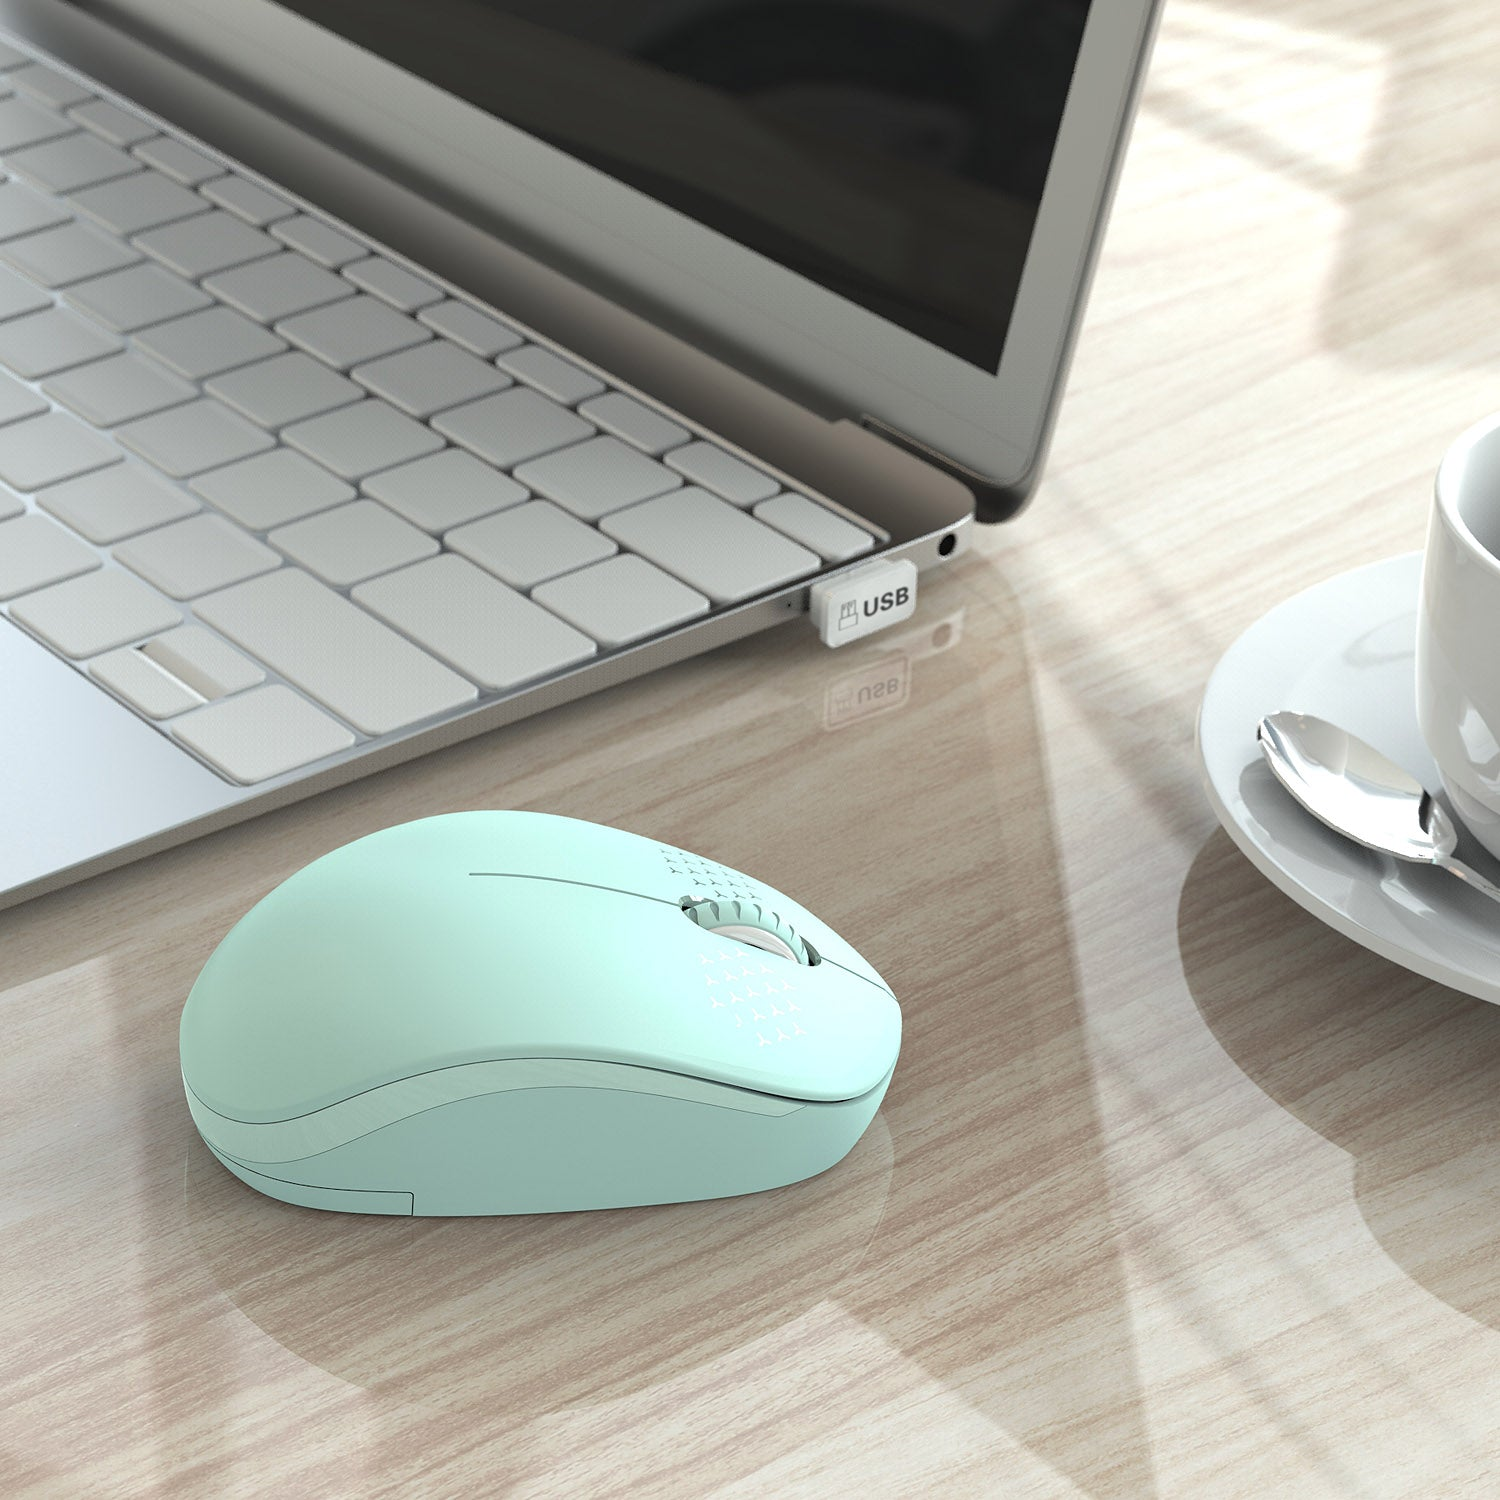 WGSB-012 Wireless Mouse